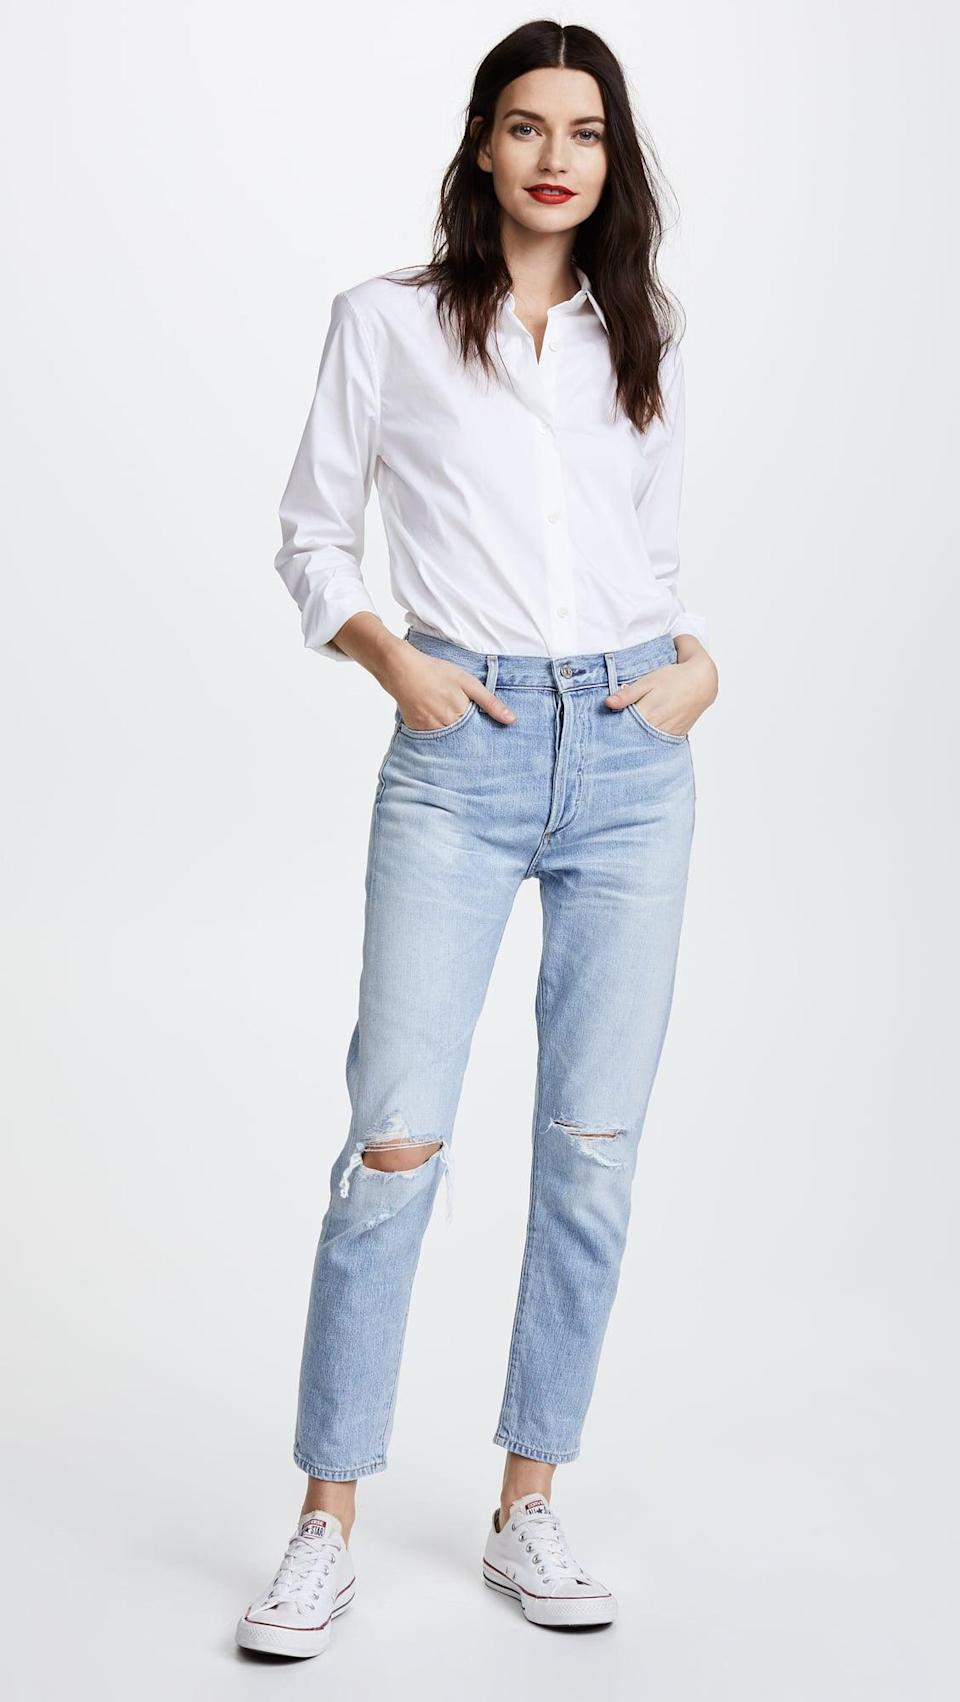 """<p>""""I've been wearing Citizen jeans for nearly a decade. They just fit me so well and they're beyond comfortable. I own these <span>Citizens of Humanity Liya High Rise Classic Fit Jeans</span> ($258) in just about every single wash there is. Whether I'm wearing them on a night out or to the office, I can rock them for an entire day without dying to take them off. The high-waist and straight leg style is exactly what I love."""" - KJ</p>"""